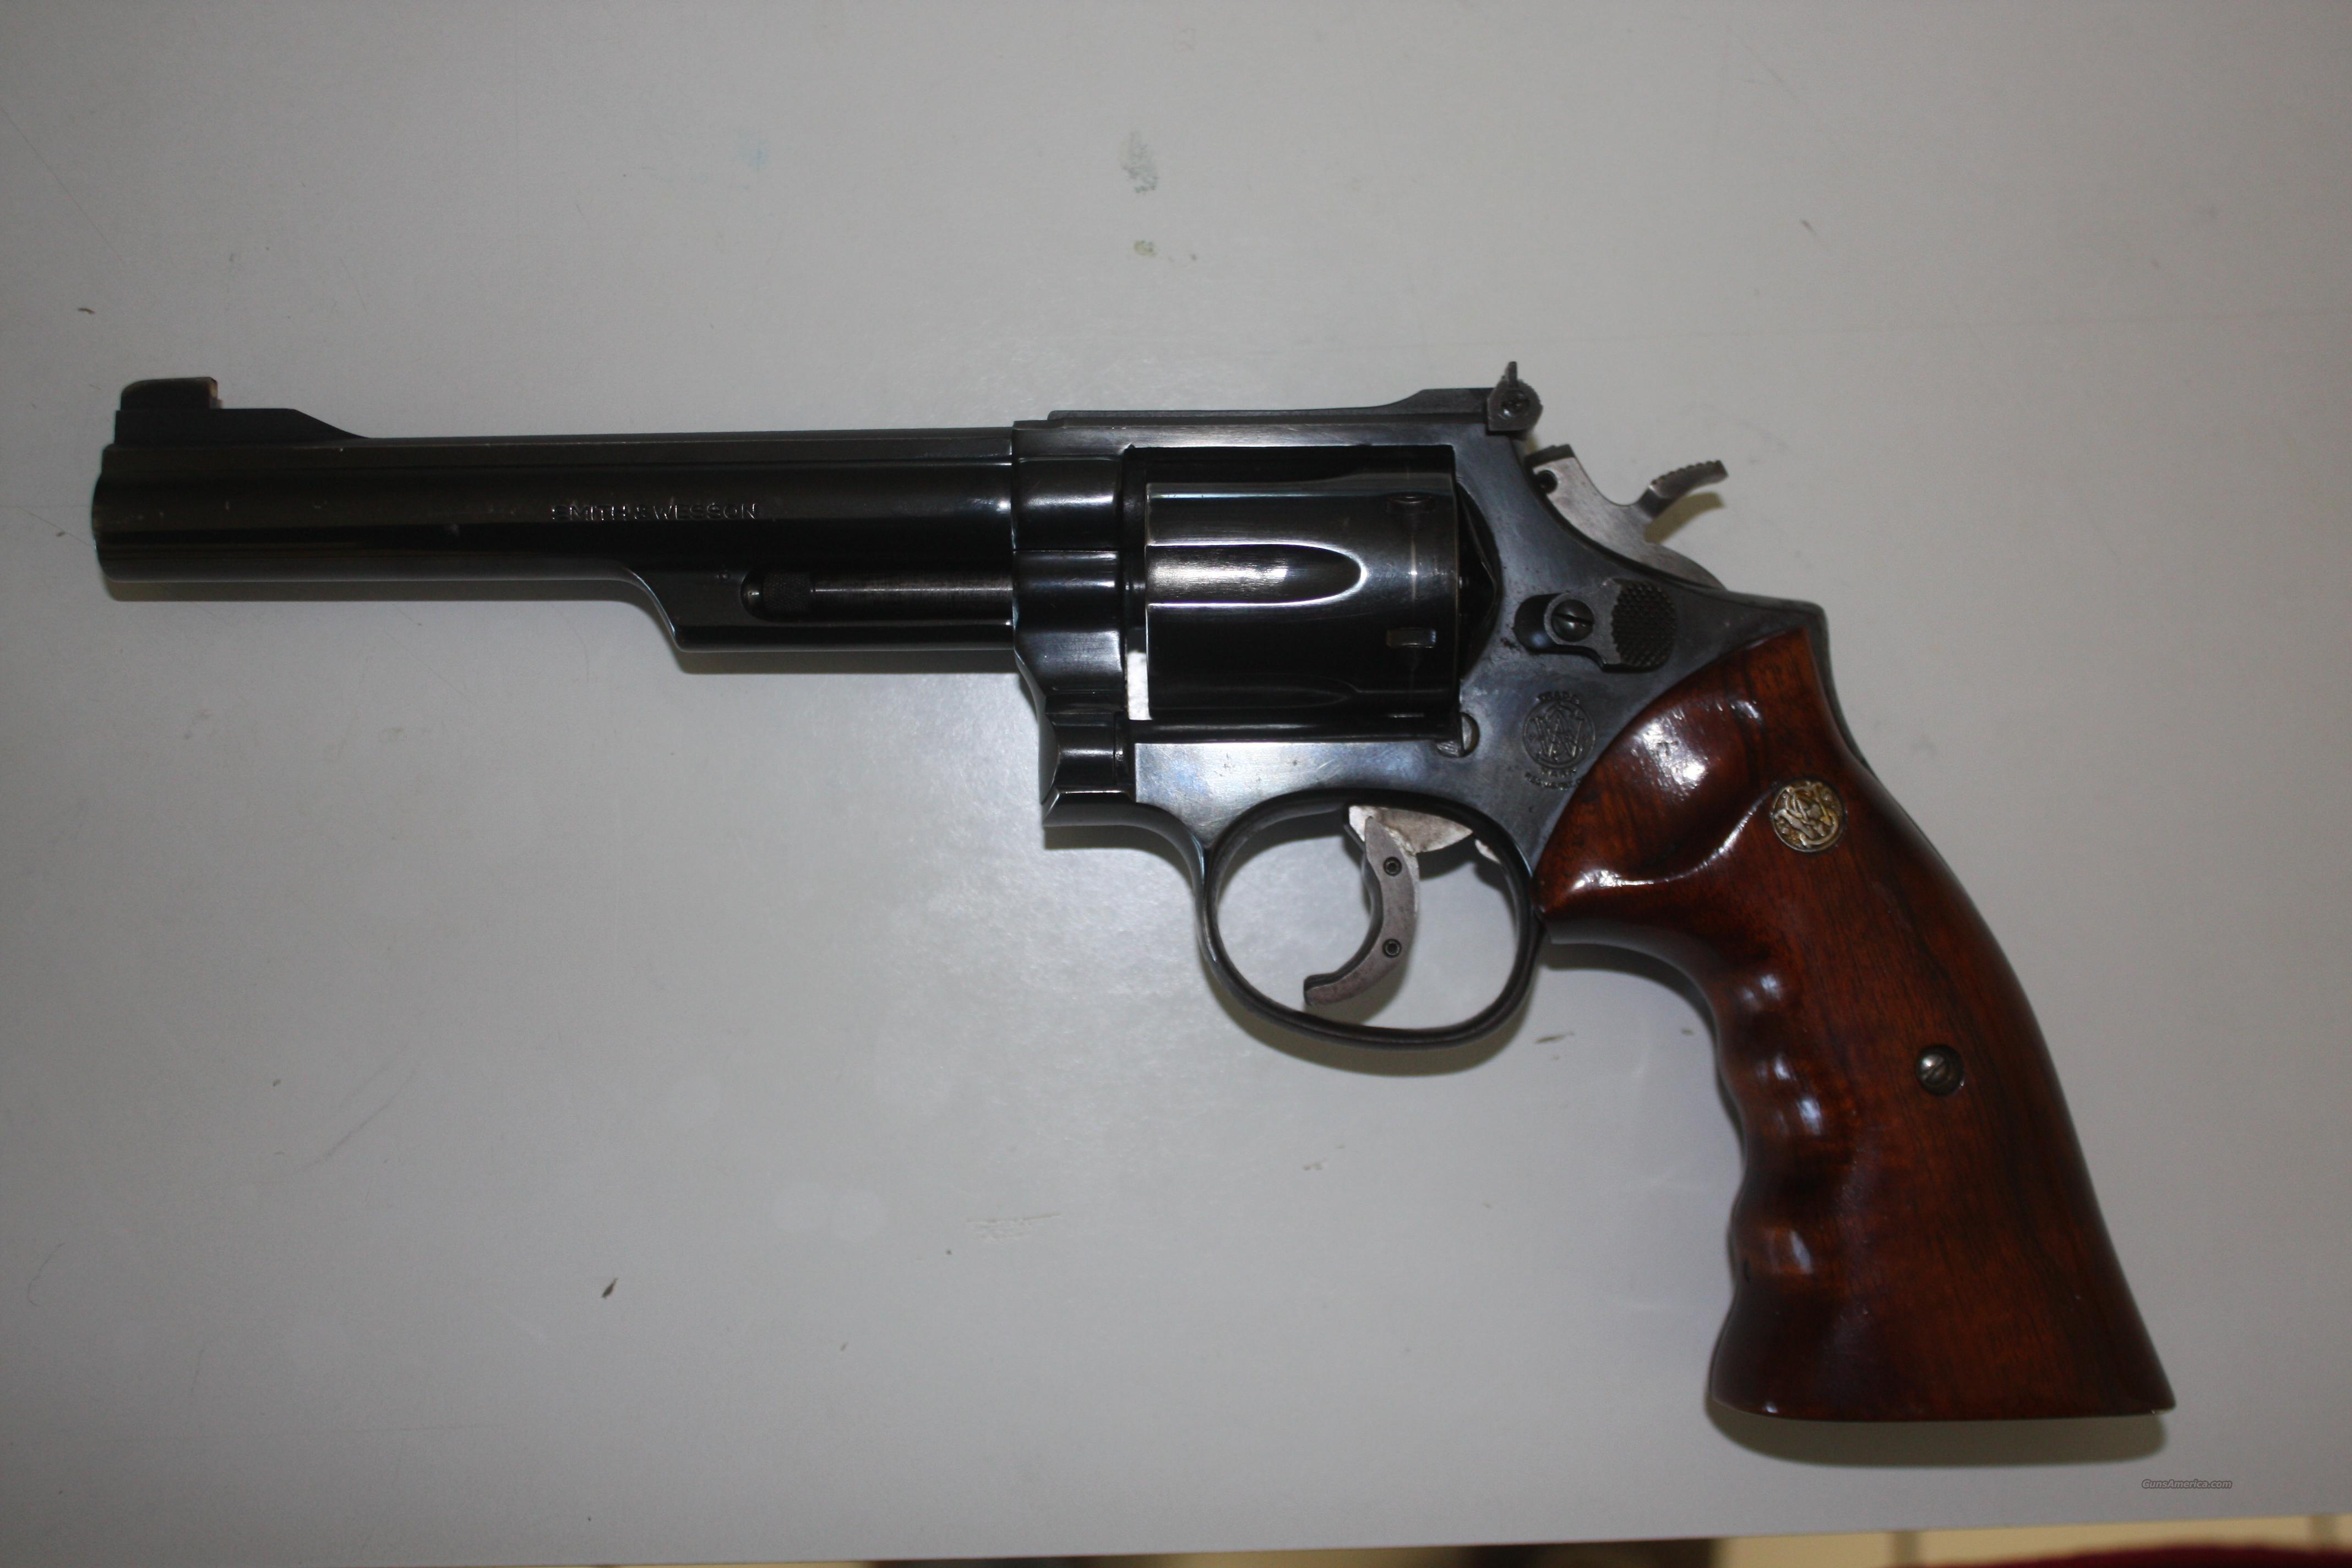 Smith & Wesson 357 magnum model 19-4  Guns > Pistols > Smith & Wesson Revolvers > Full Frame Revolver